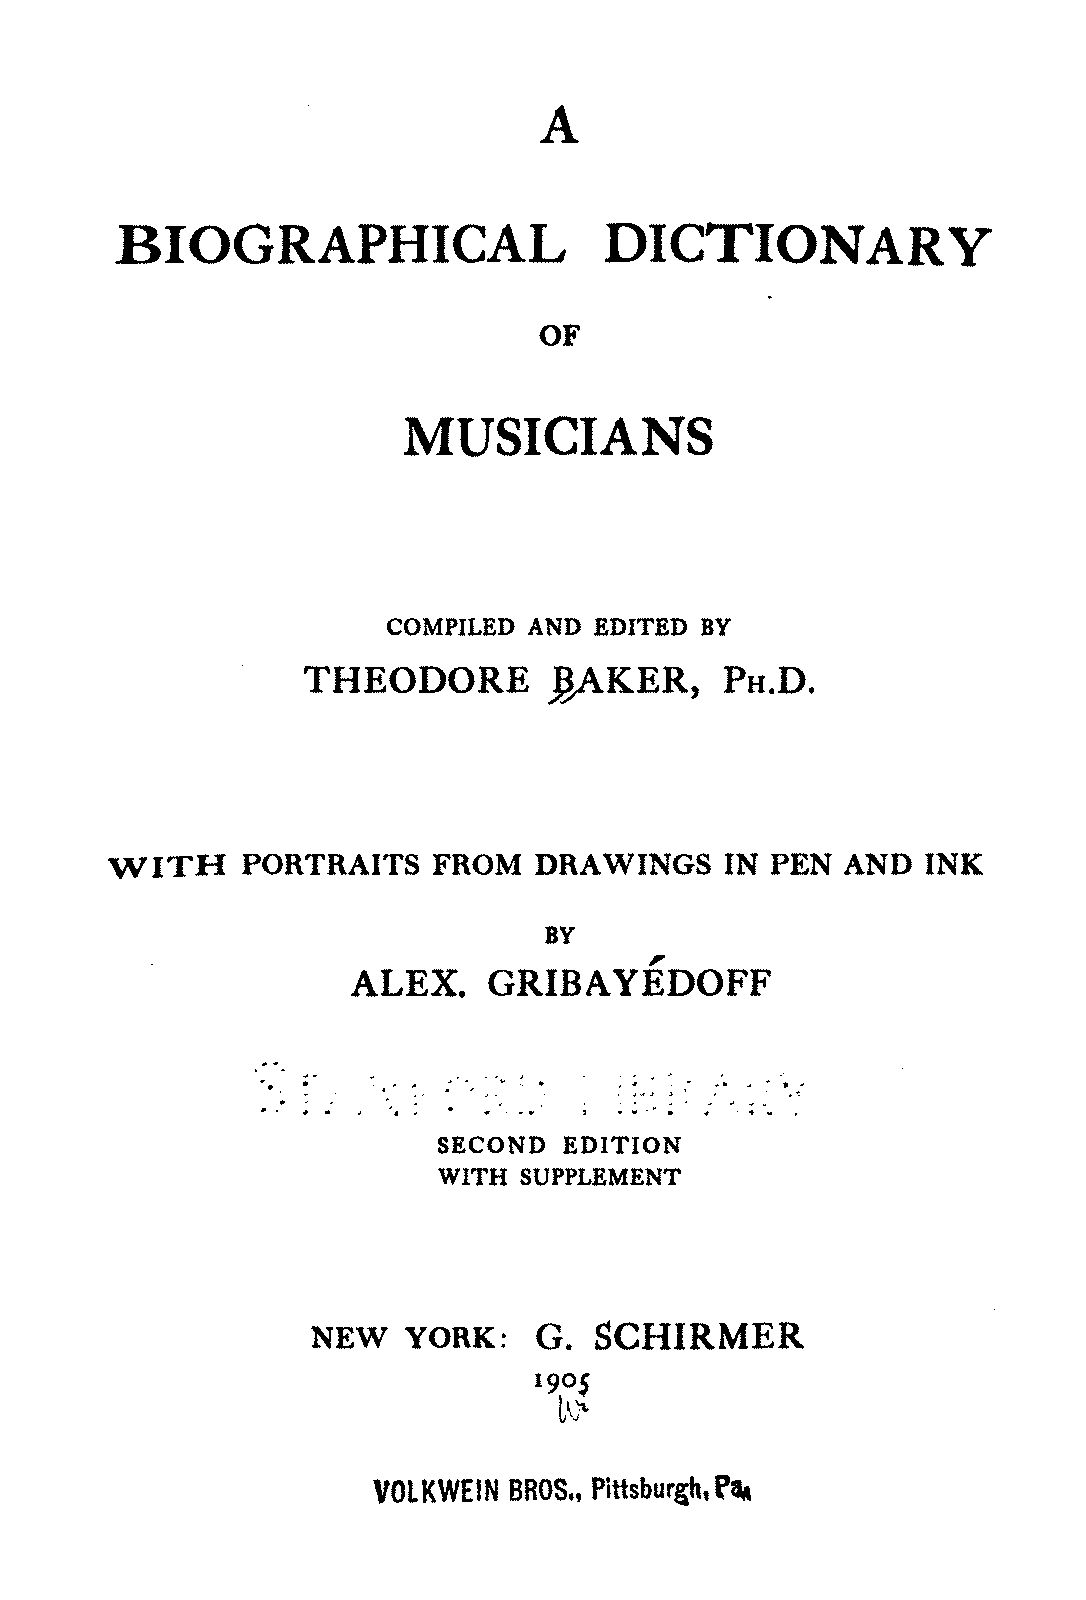 PMLP192847-A biographical dictionary of musicians 1905 stanford.pdf